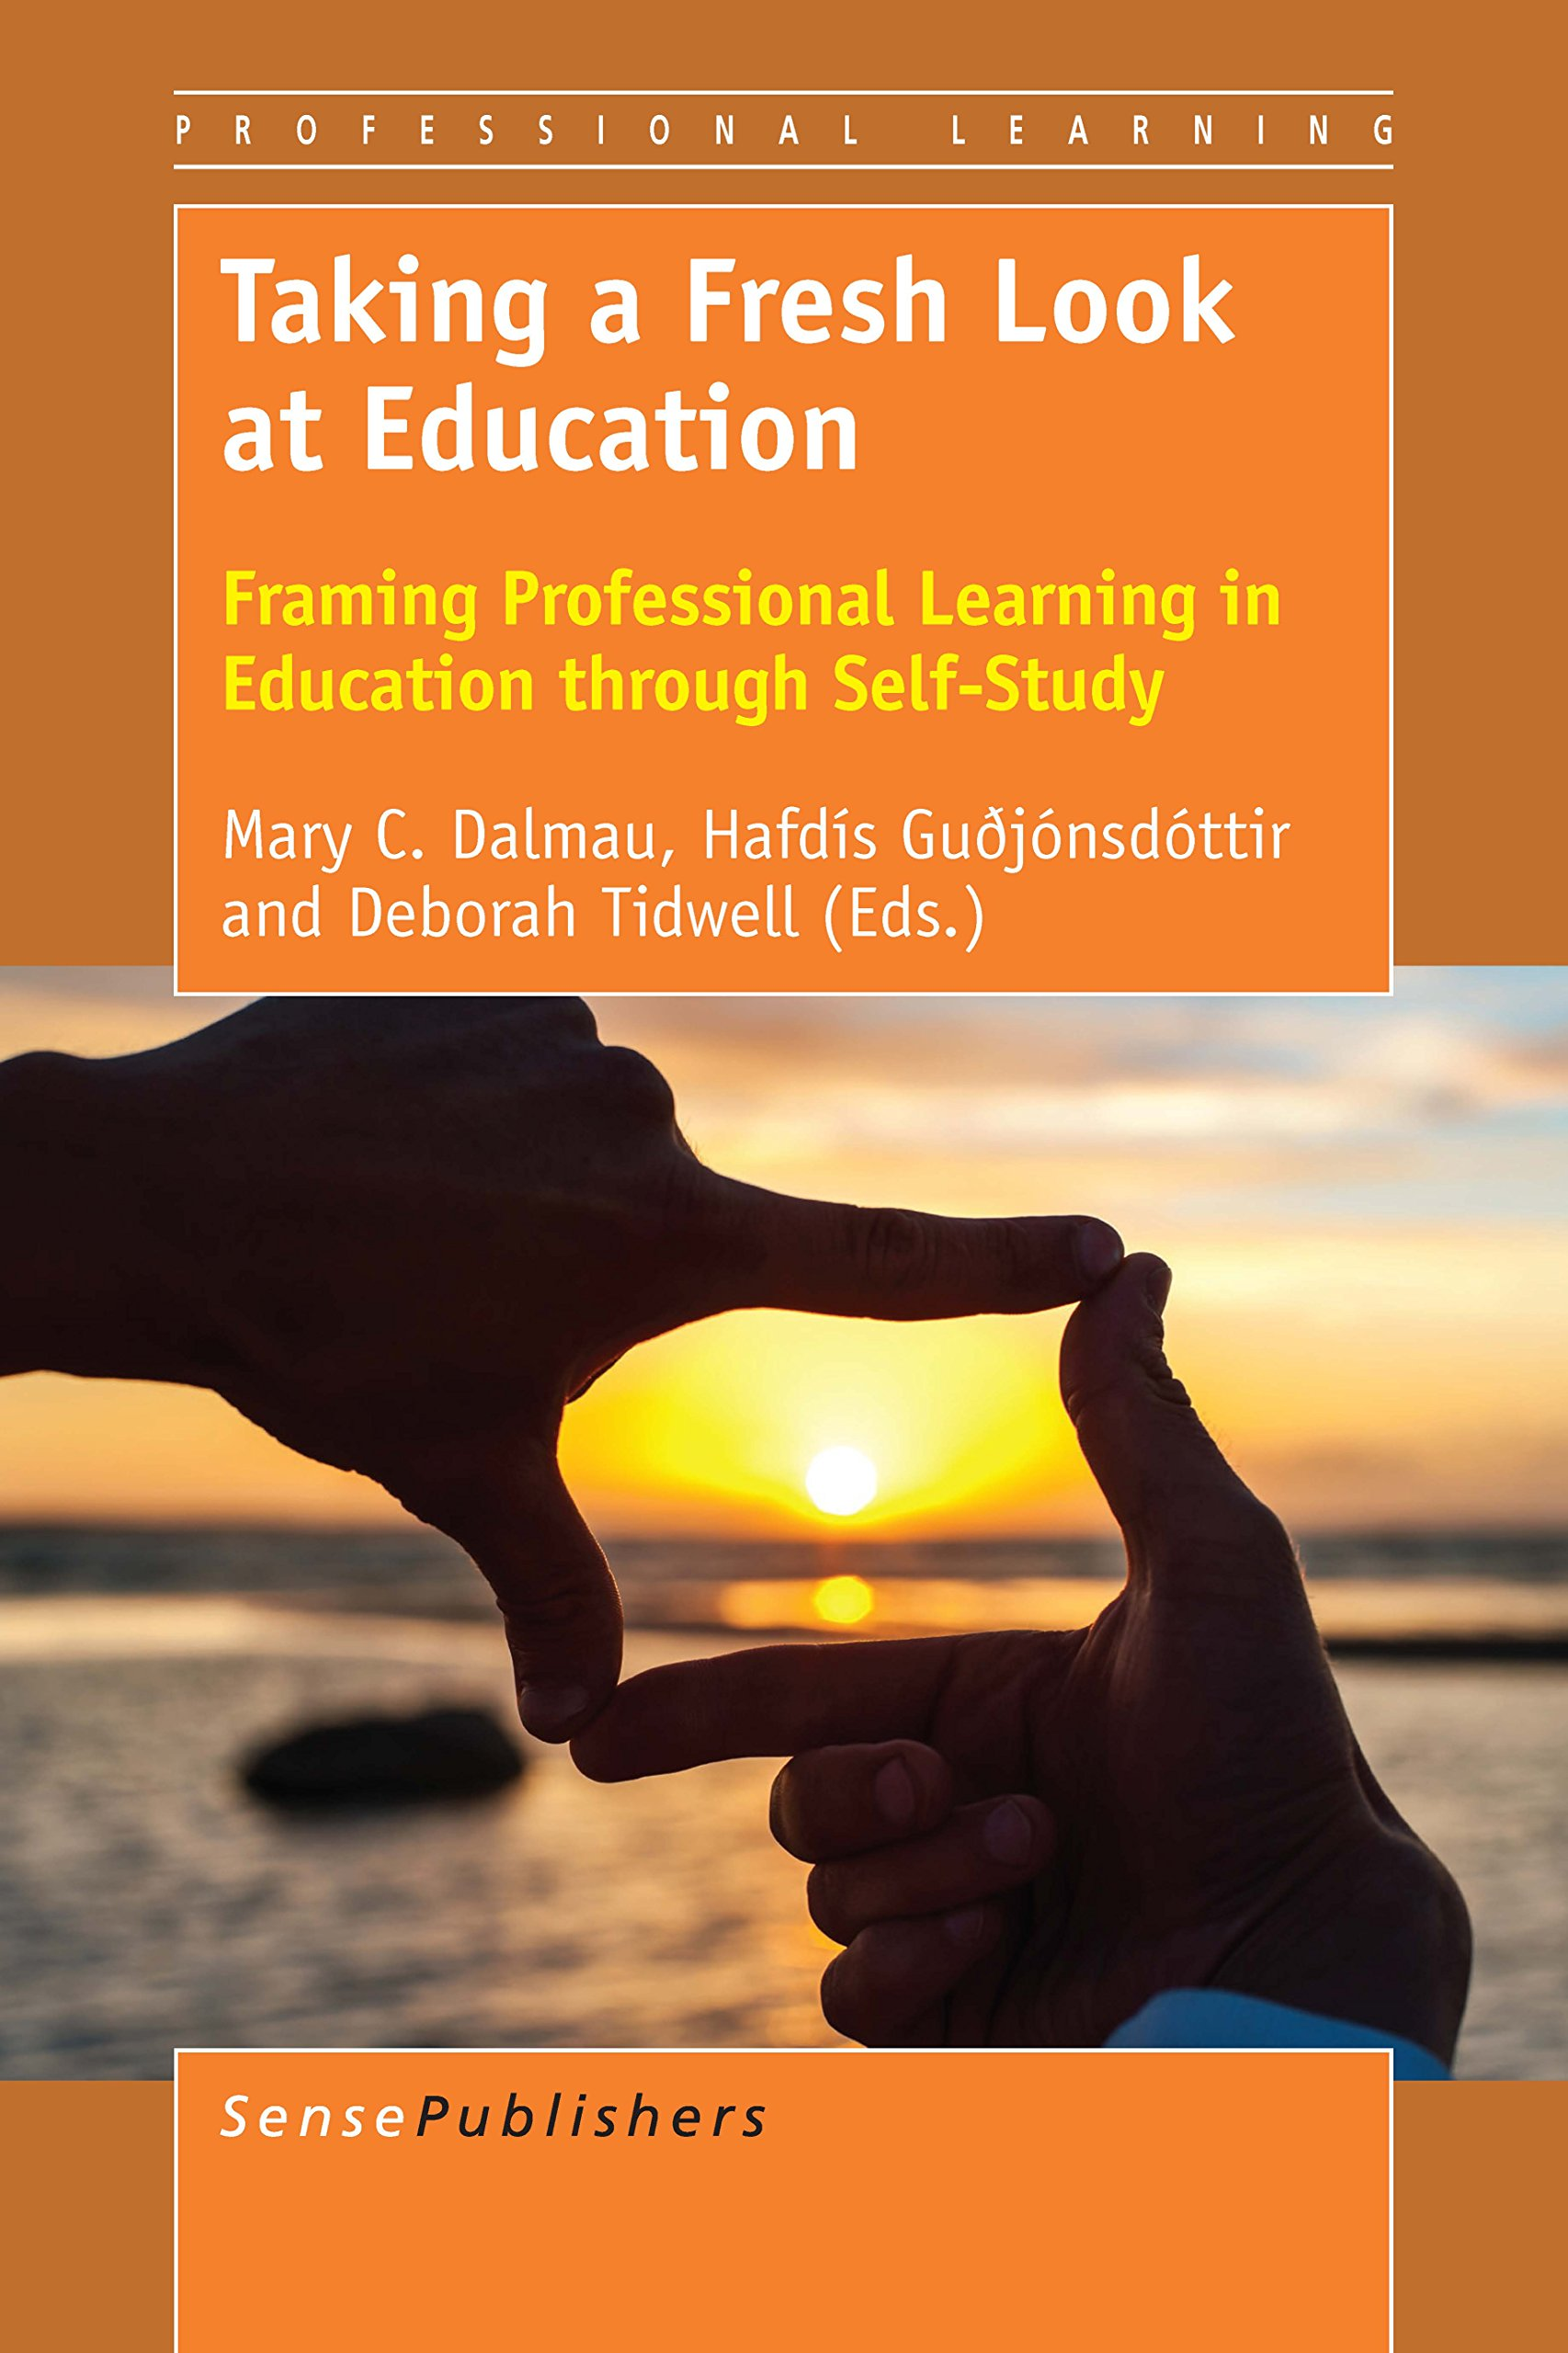 Taking a Fresh Look at Education (Professional Learning) ebook